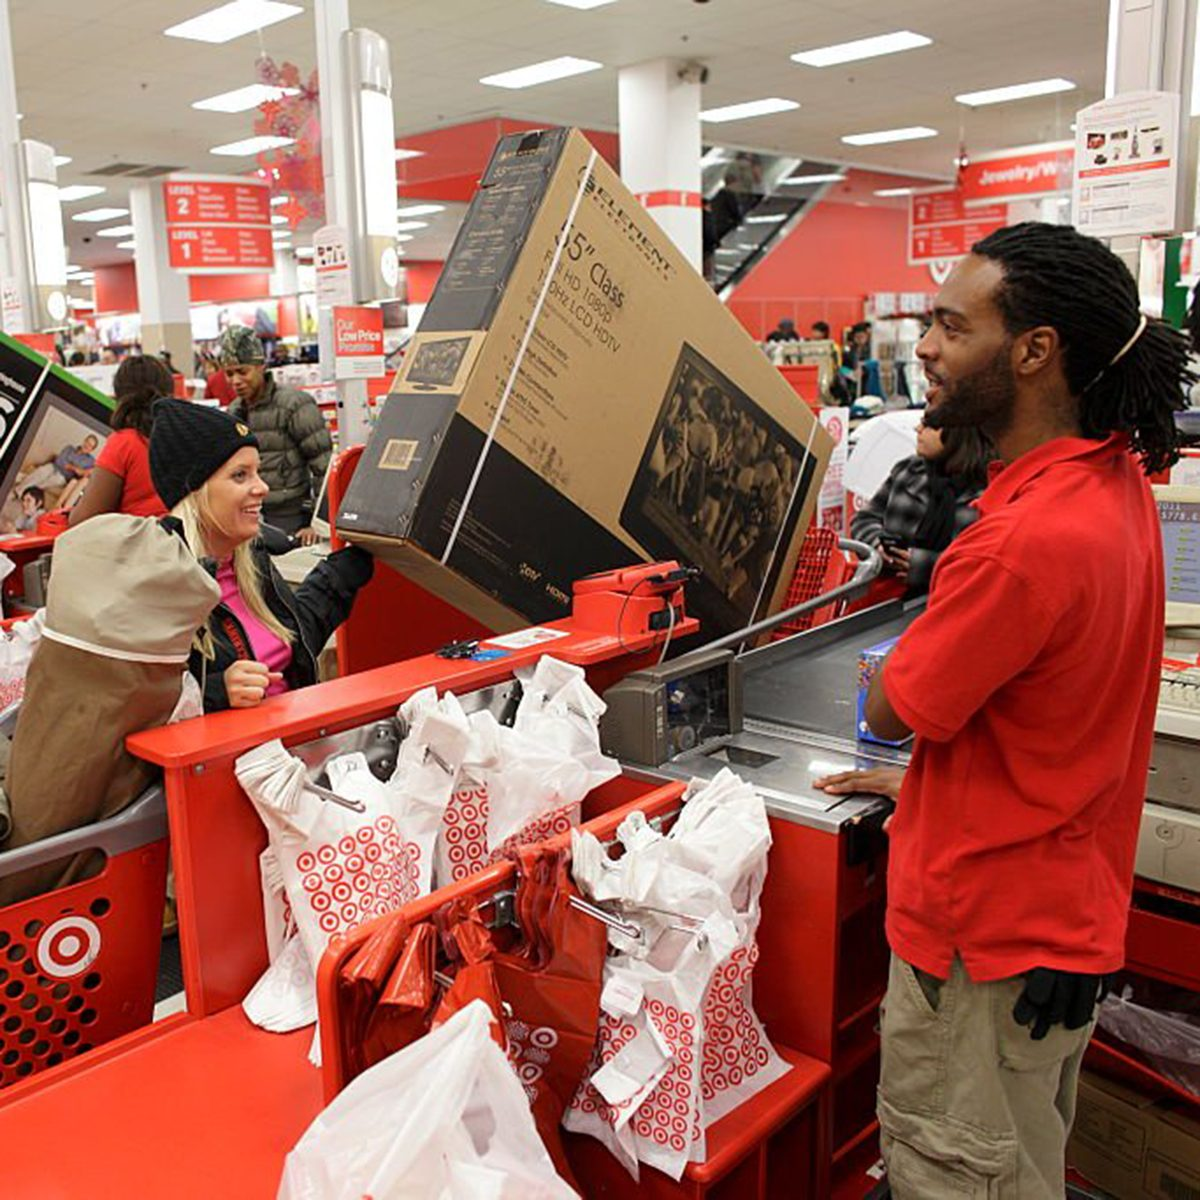 Black Friday shoppers checking out at Target